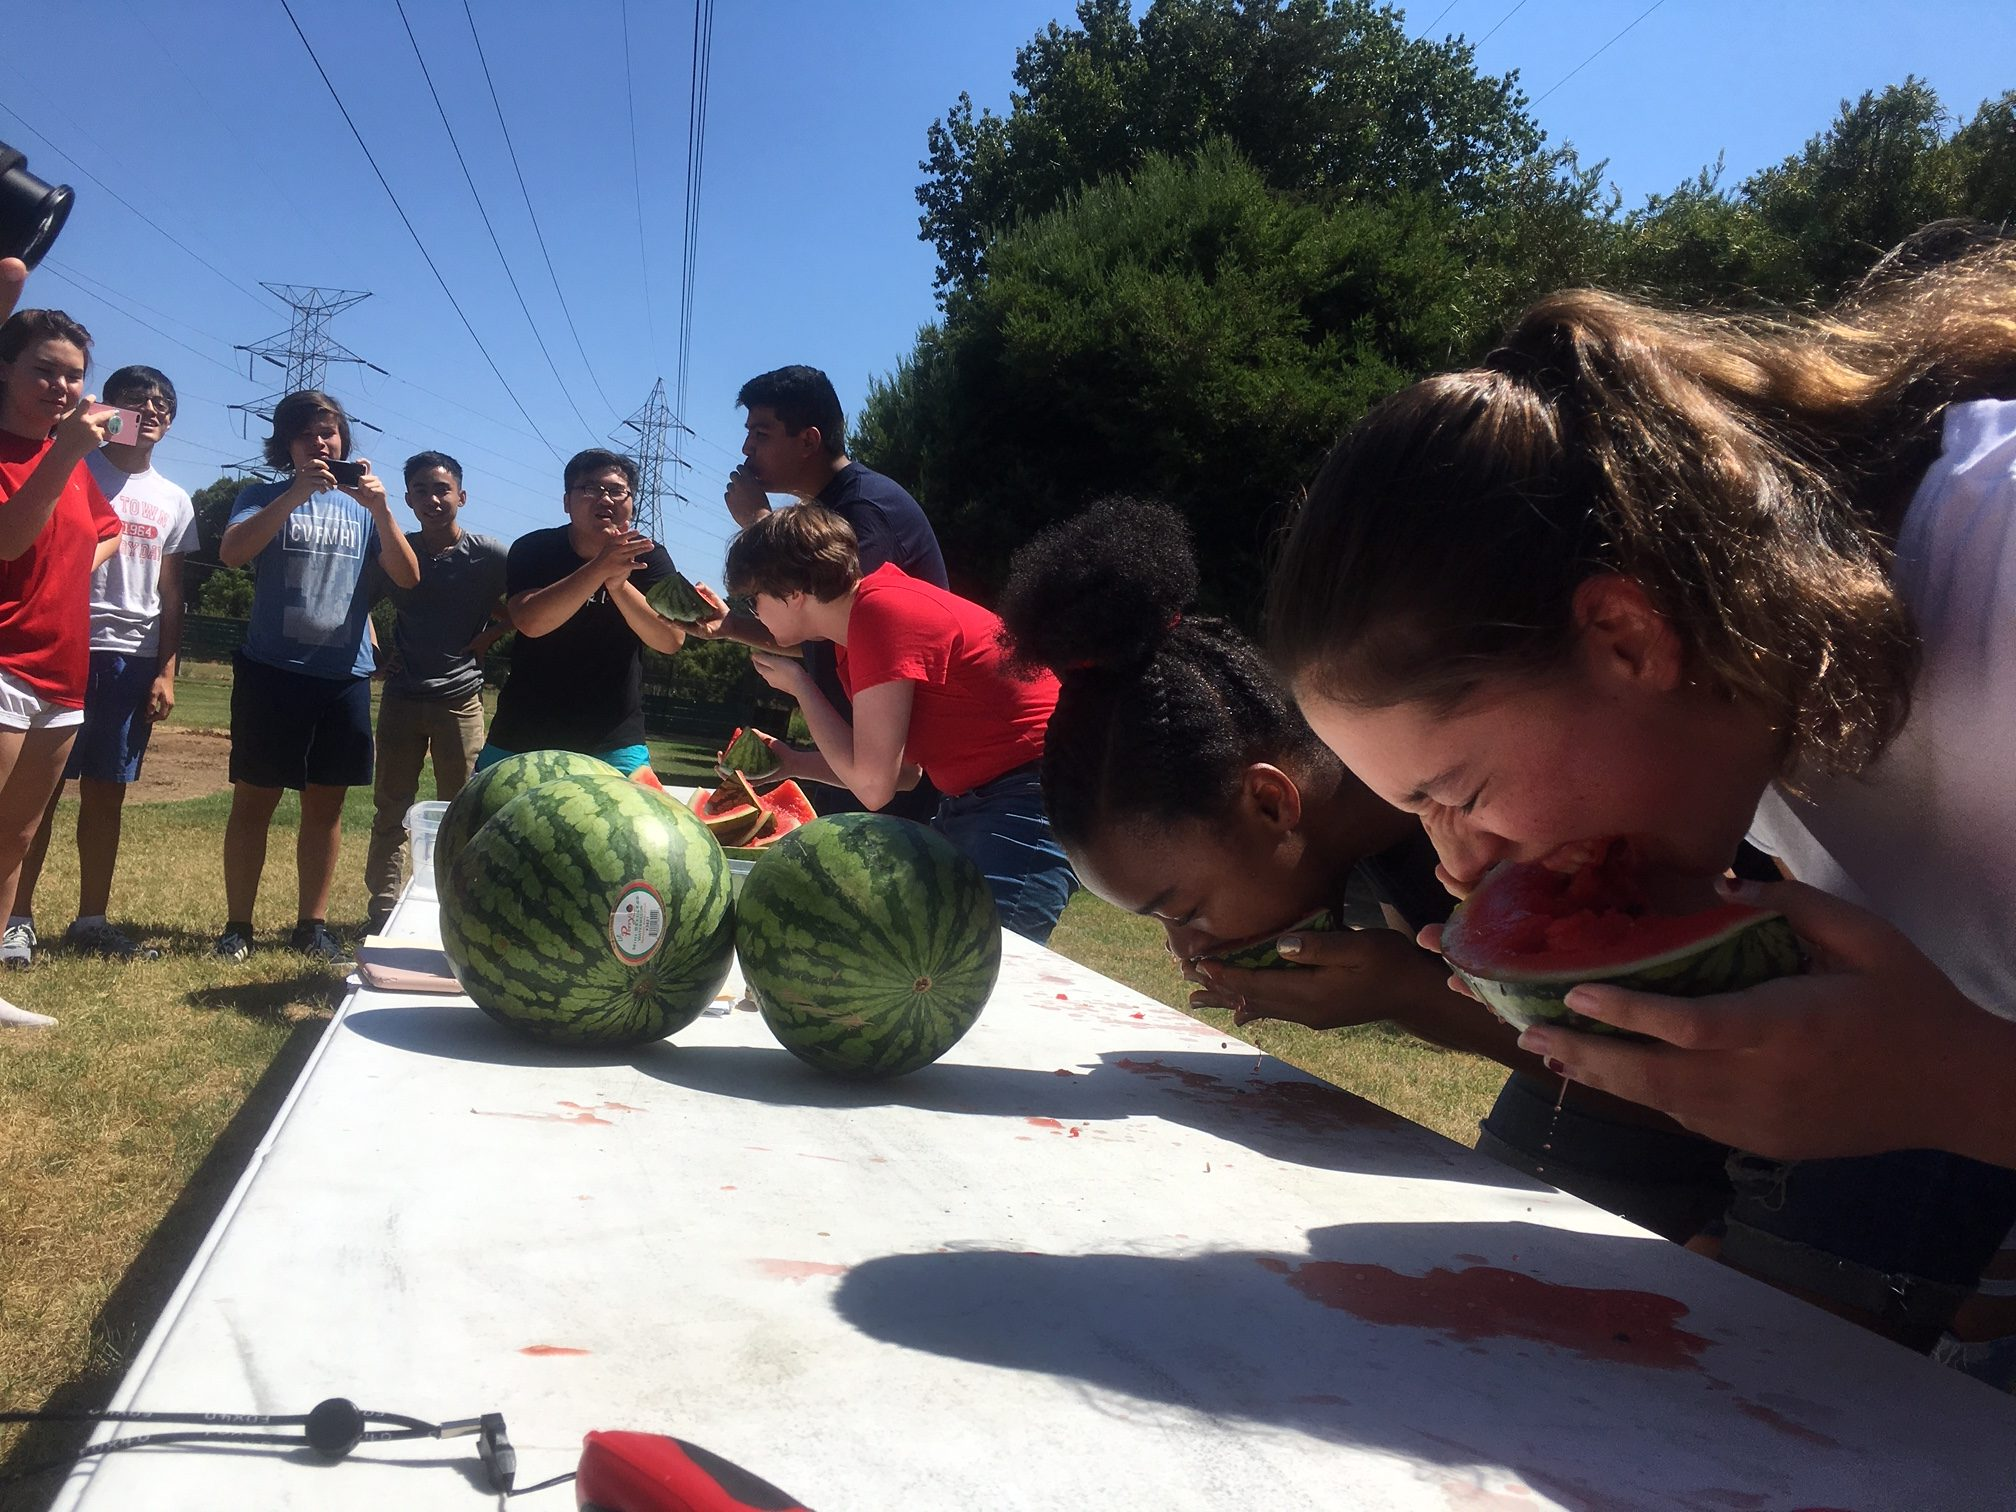 Racing against juniors Michael Tovar (fourth from right) and Anna Fluetsch (third from right), freshmen Emily Cook (far right) and Savanna Karmue devour their watermelon slices. (Photo by Larkin Barnard-Bahn)